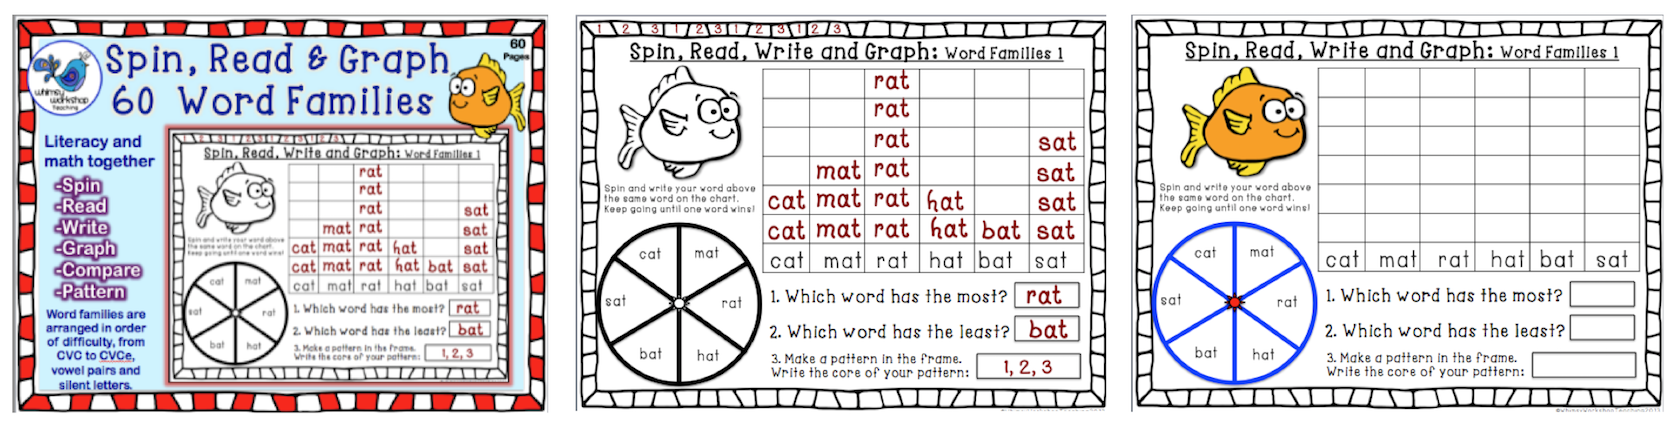 Spin, Read, Graph 60 Word Families